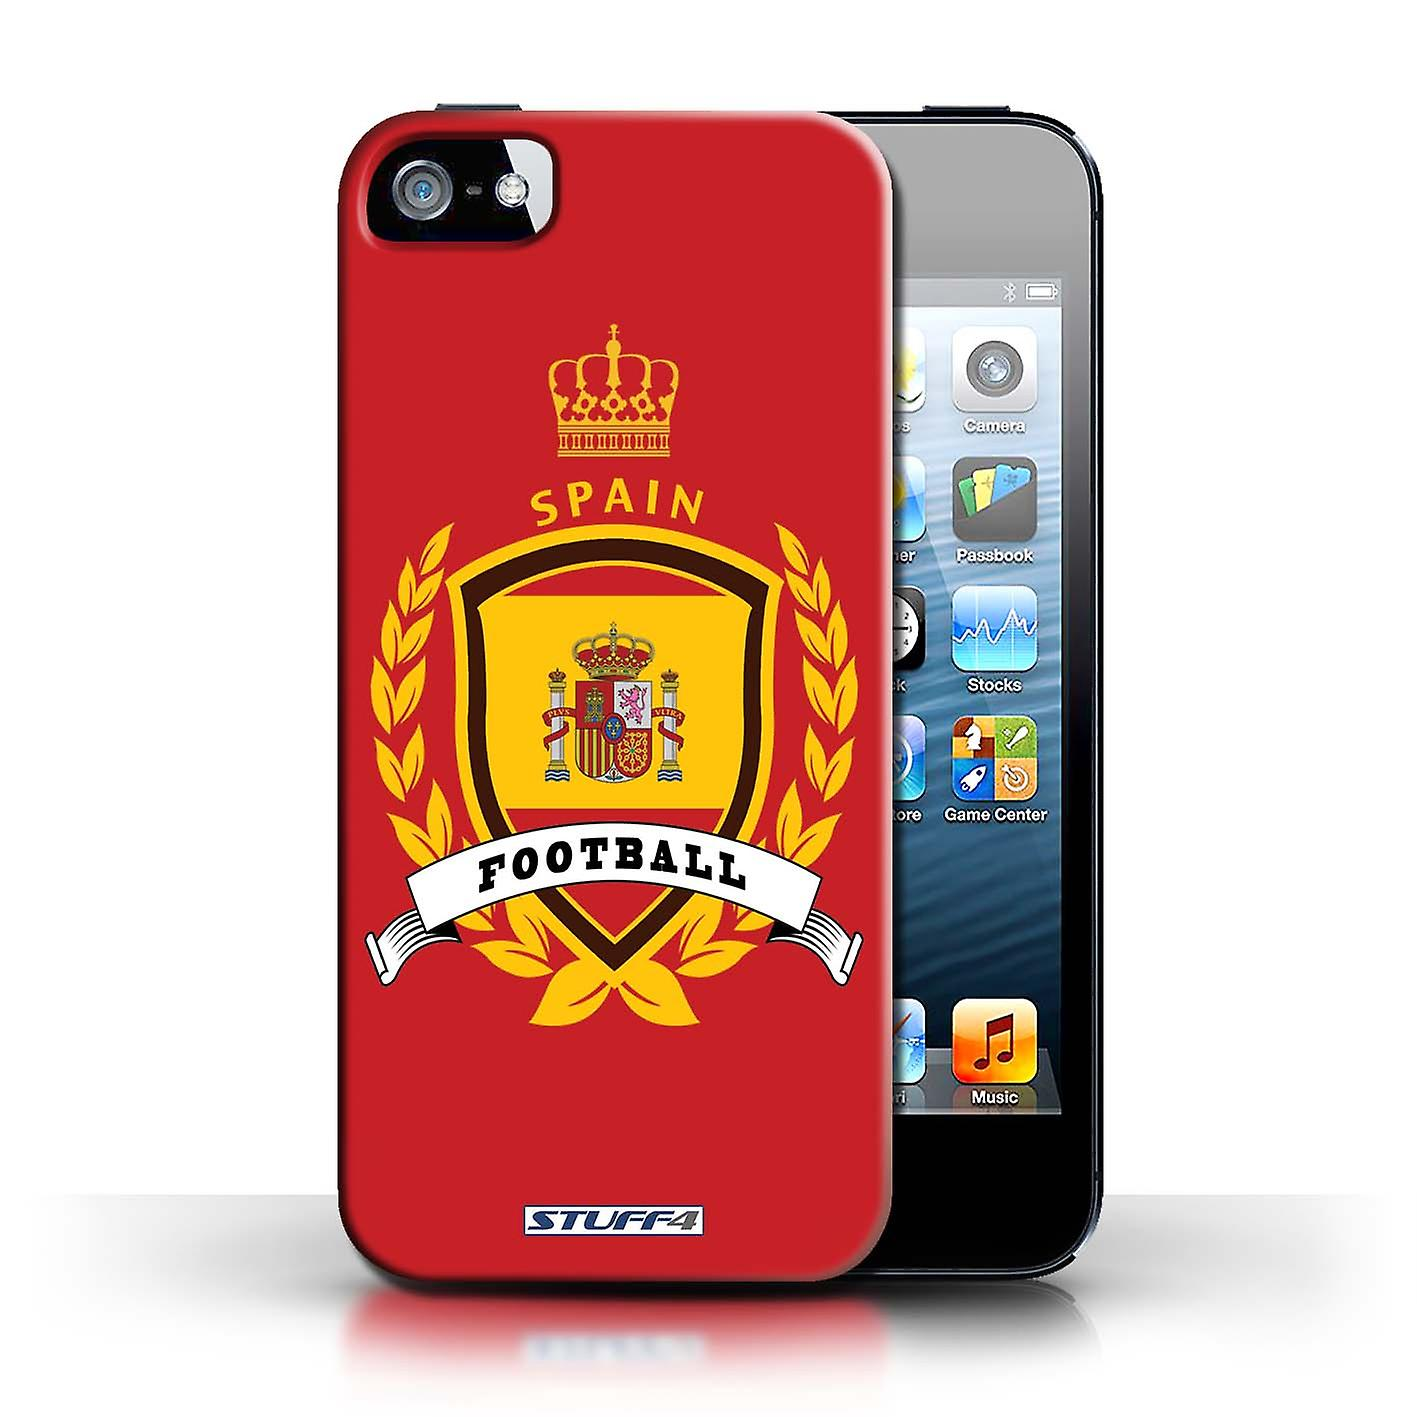 huge selection of f56da 4d52f STUFF4 Case/Cover for Apple iPhone SE/Spain/Spanish/Football Emblem